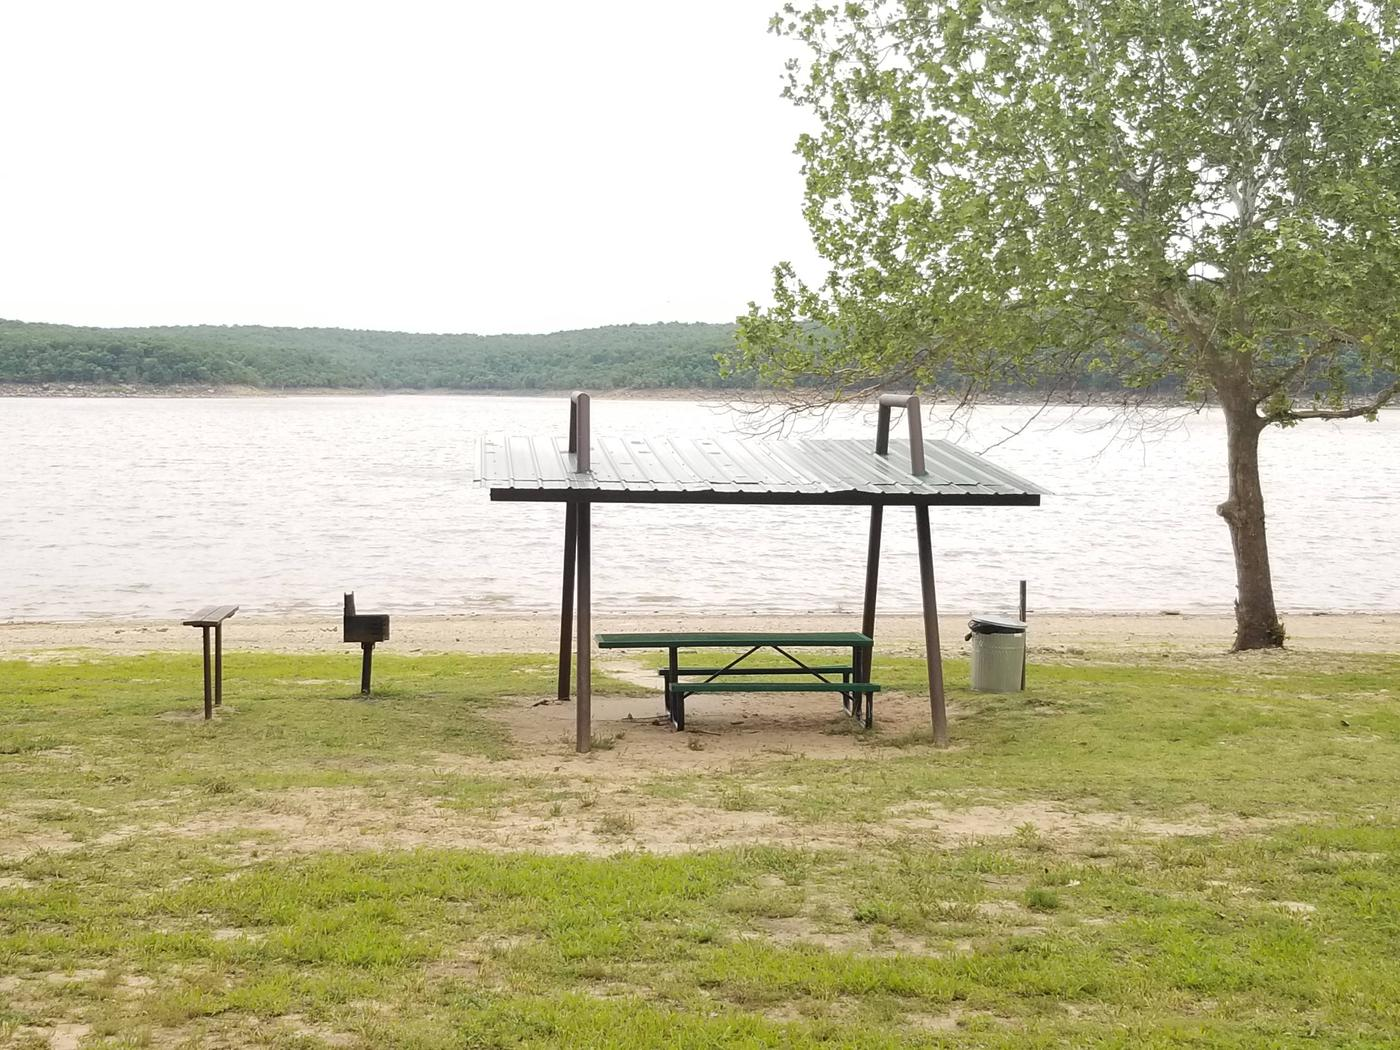 Swim Beach Group ShelterThis picnic shelter is located in the swim beach area.